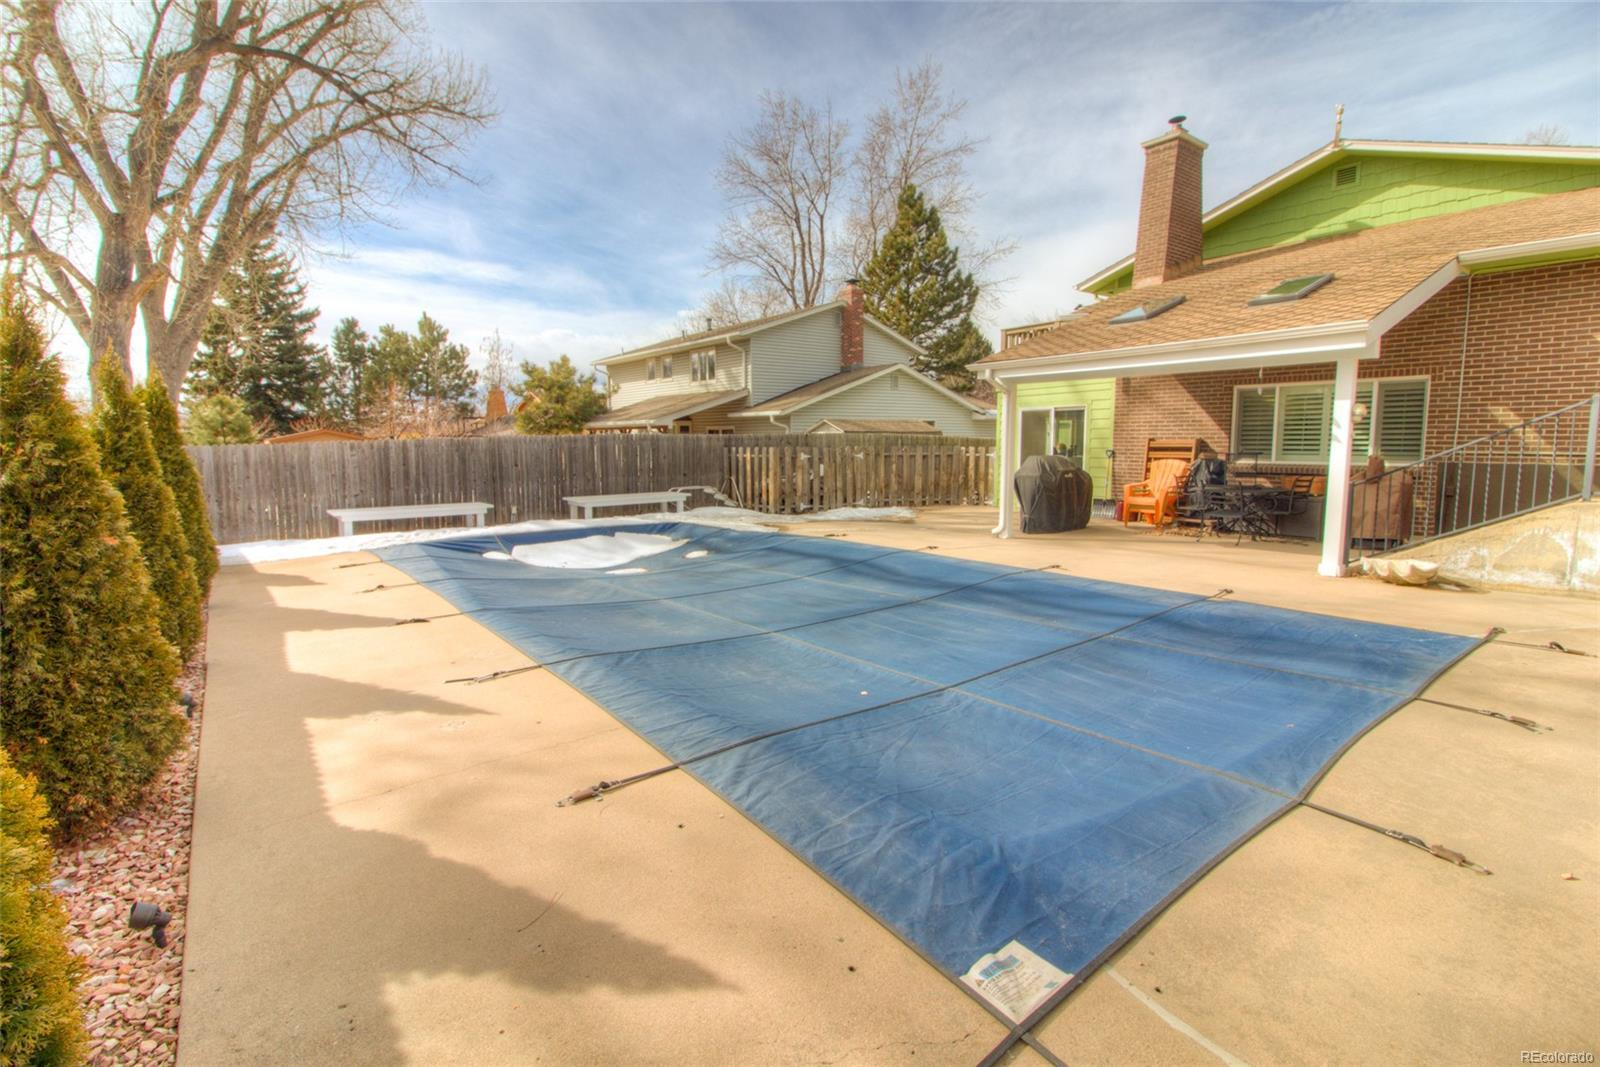 Pool winterized and covered right now.